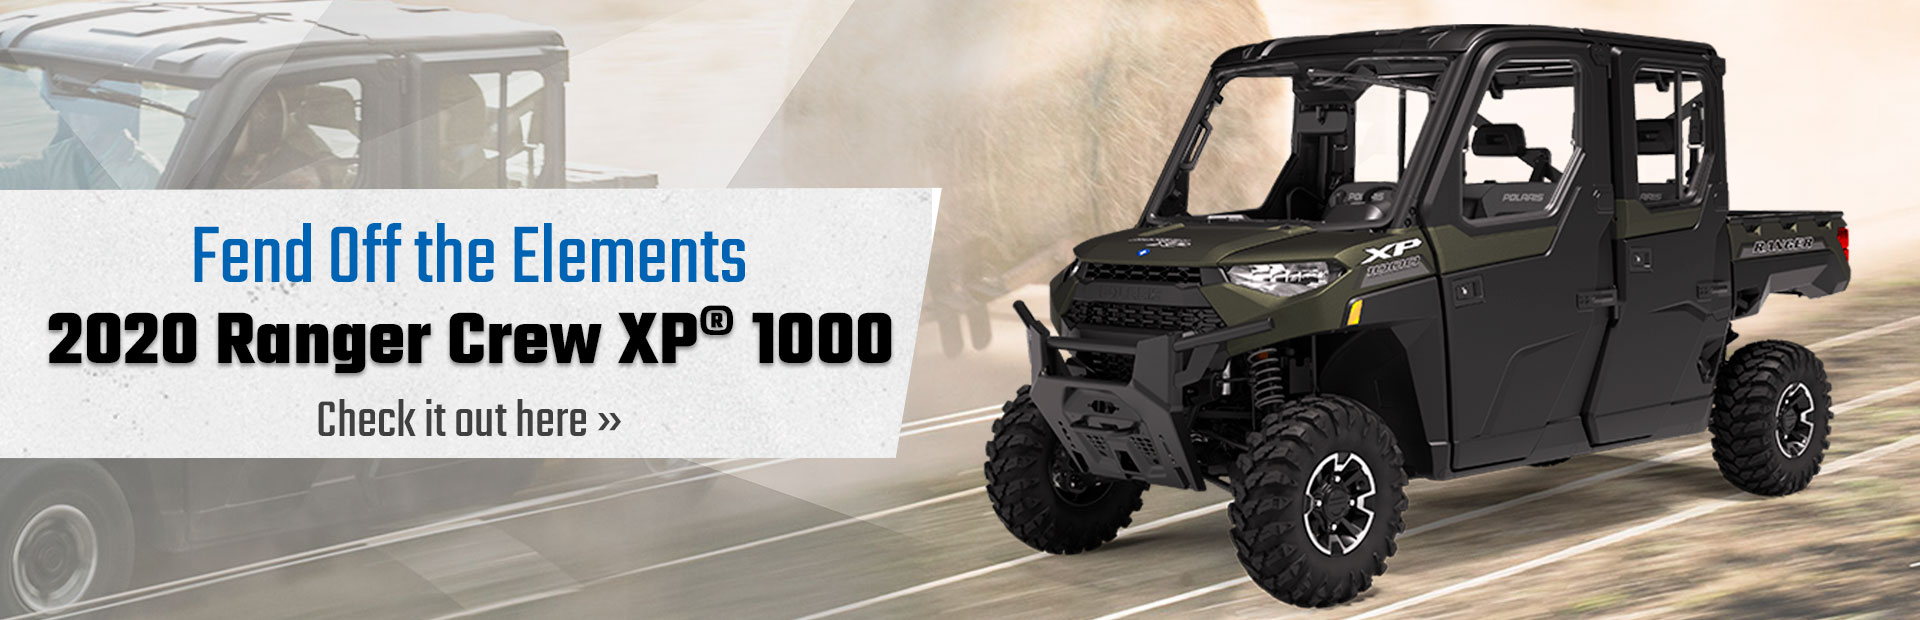 2020 Ranger Crew XP® 1000 inventory. Click here to find out more!